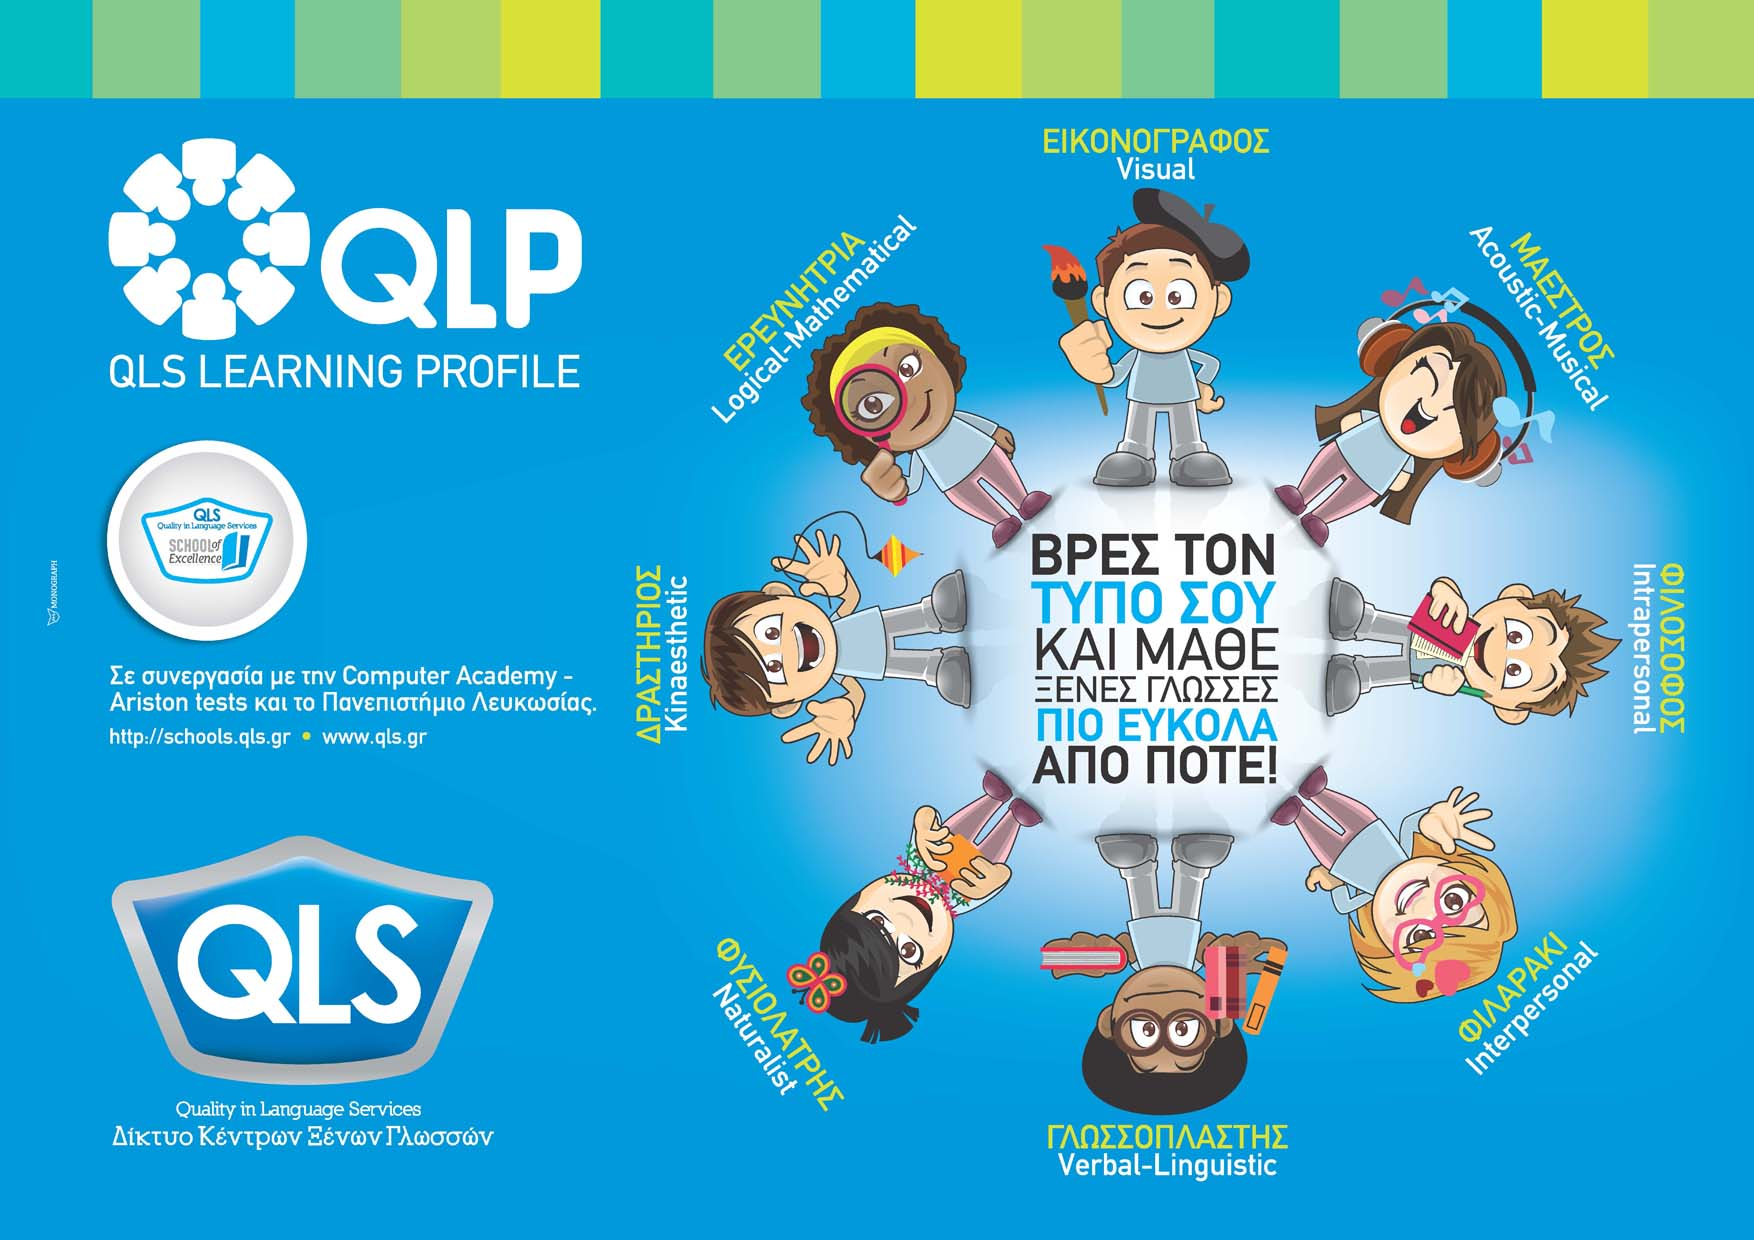 QLP_Posters70X50_QLS_Page_10-ALL-TYPES-ROUND